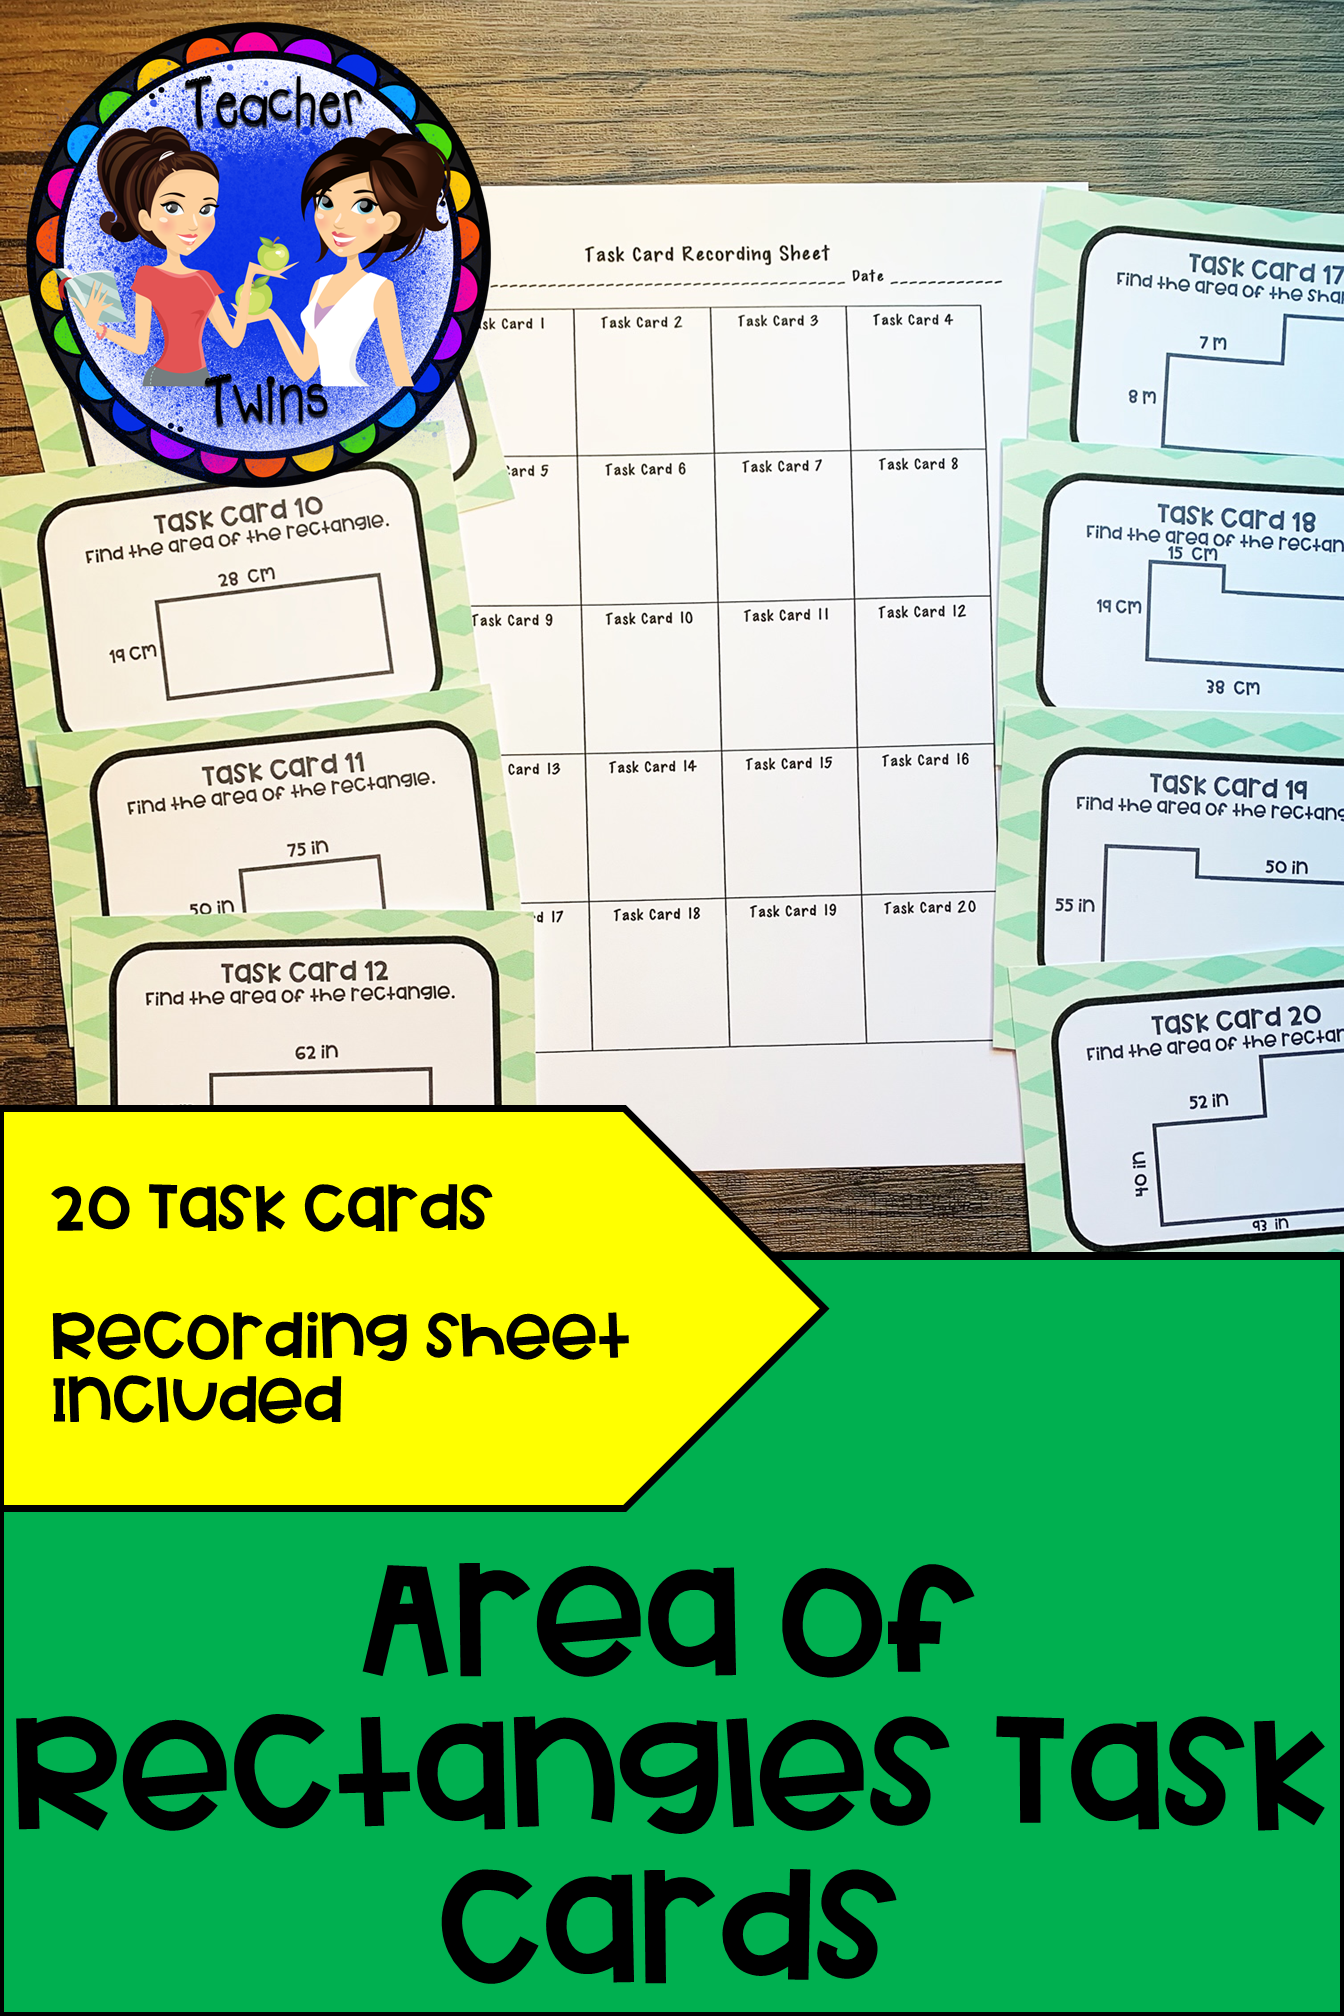 Finding The Area Of Rectangles Task Cards